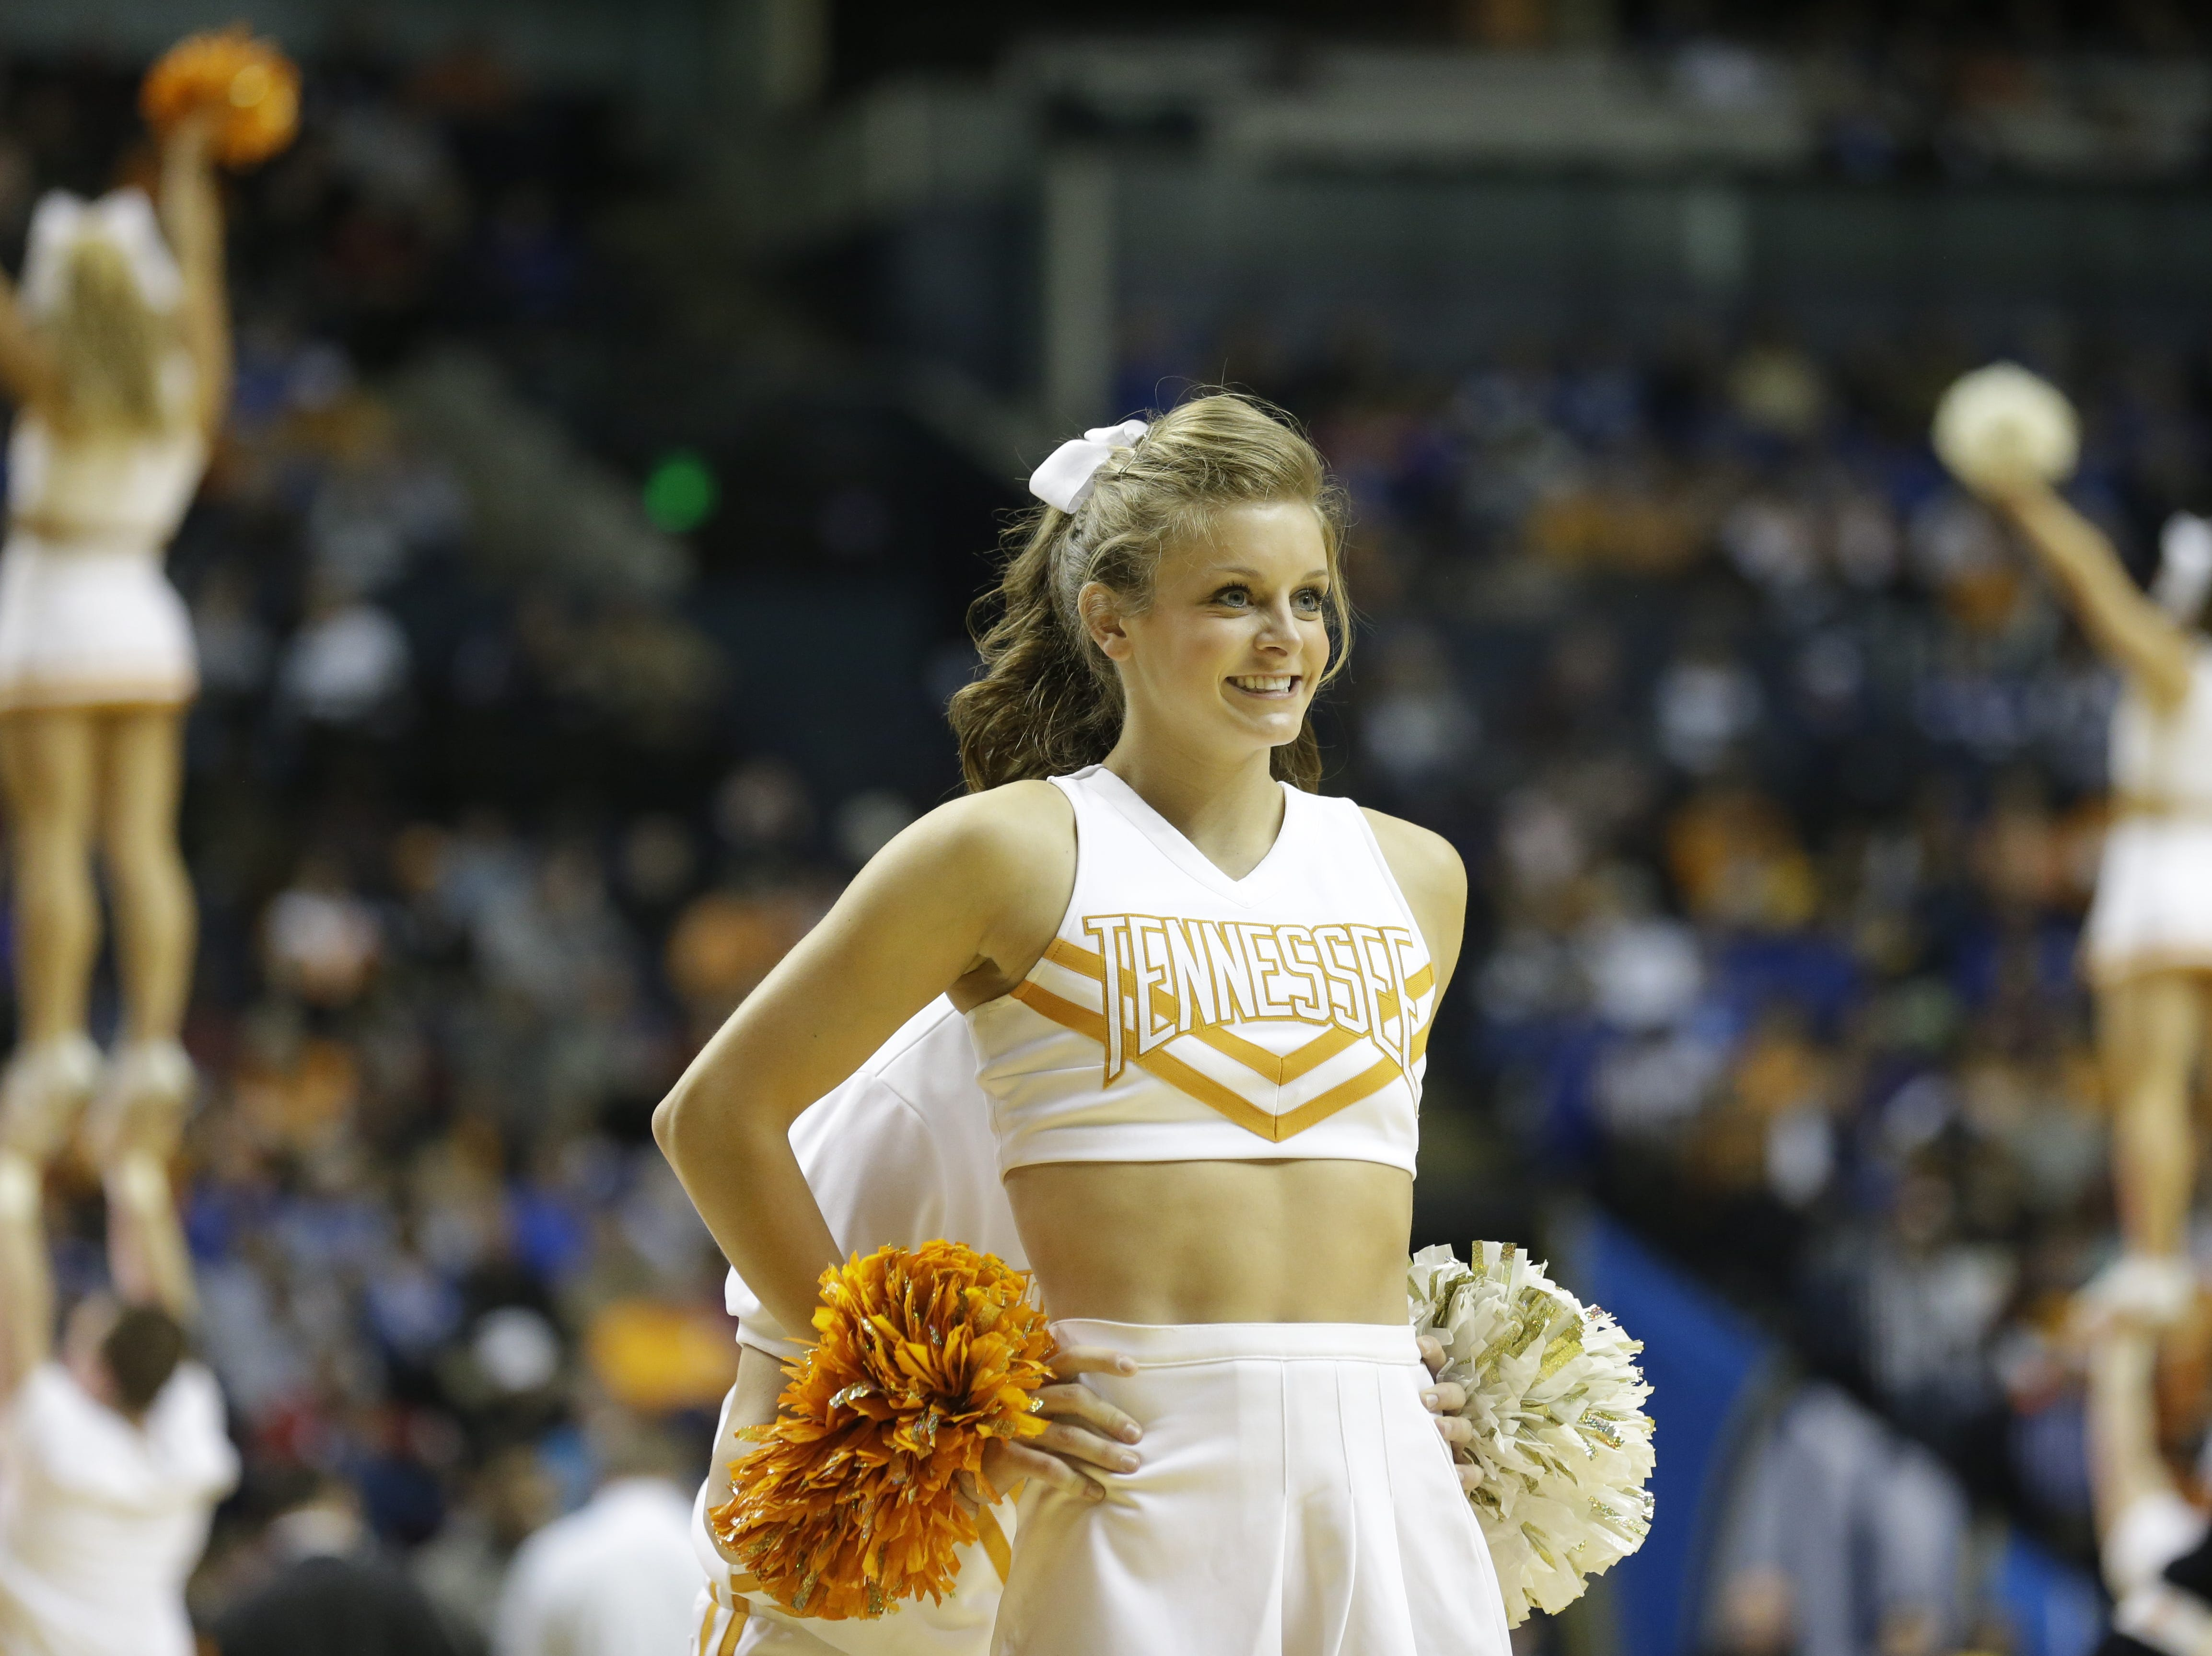 Tennessee cheerleaders perform during the first half of an NCAA college basketball game against the Mississippi State at the Southeastern Conference tournament, Thursday, March 14, 2013, in Nashville, Tenn. (AP Photo/John Bazemore)